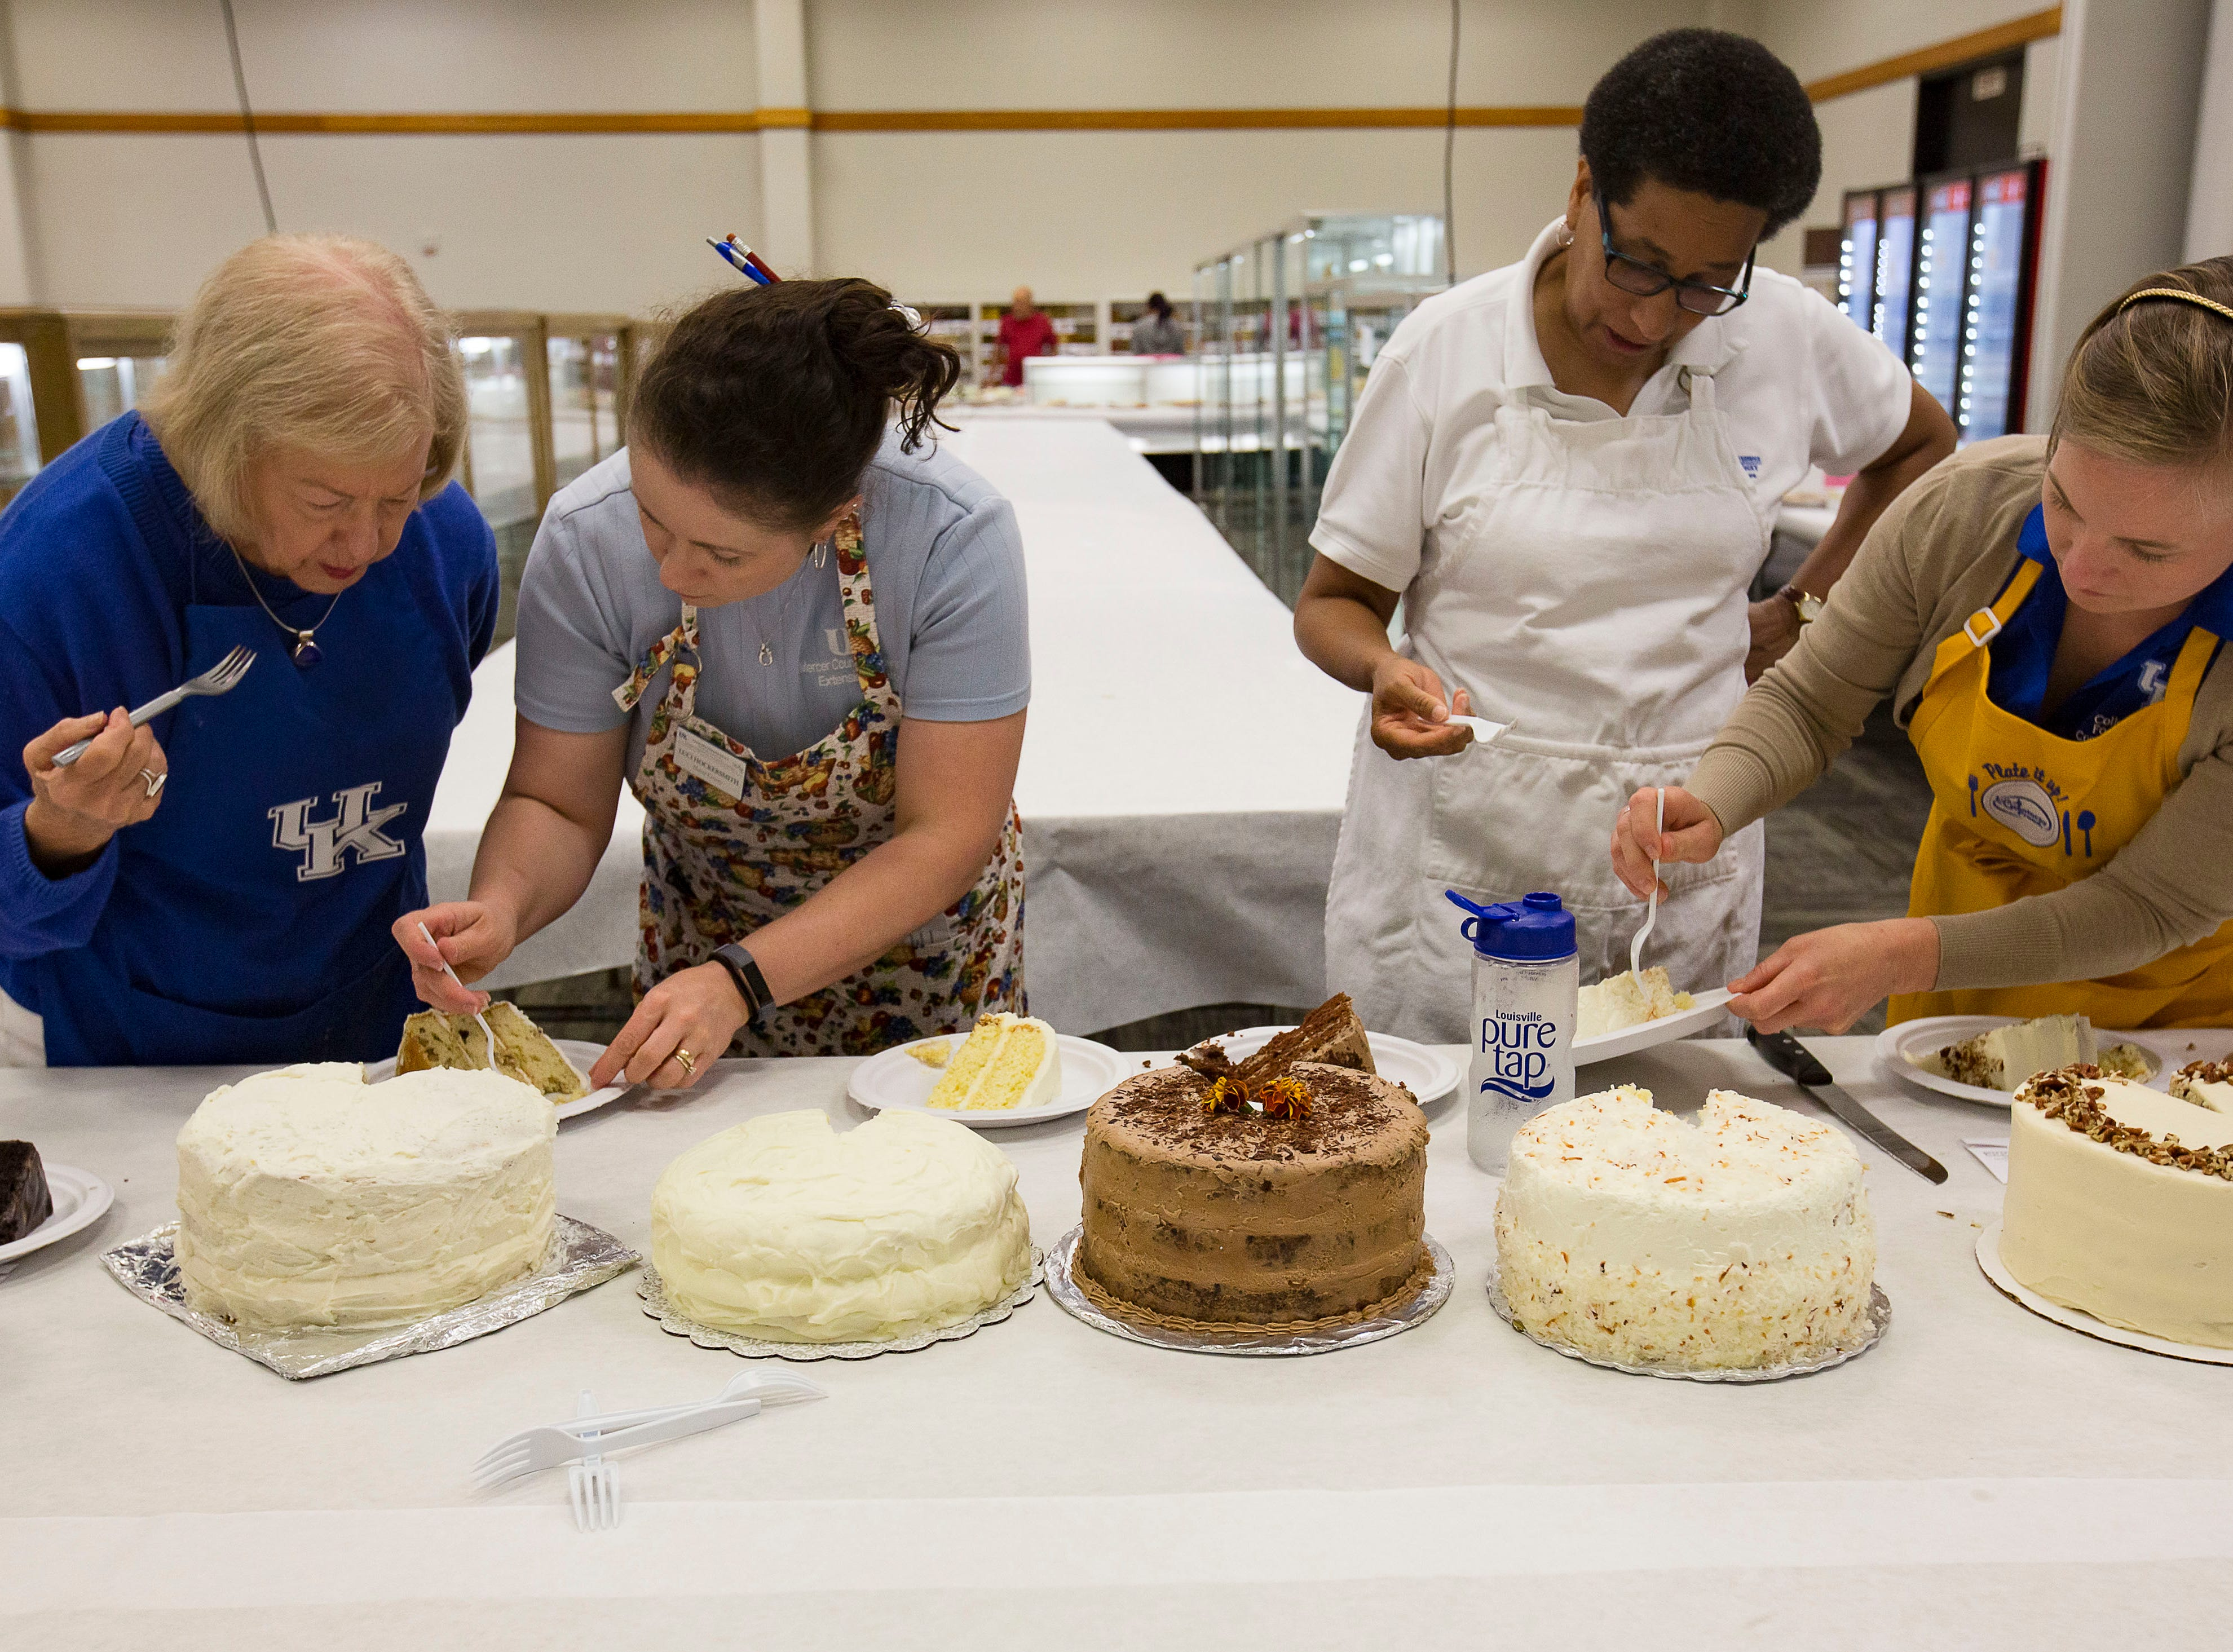 """Left to right, Jeanette Capman, Luci Hocerksmith, Valerie Holland, nd Elizabeth Coots, taste cakes in the """"Favorite Cake"""" category at the Kentucky State Fair on Tuesday, August 14, 2018."""